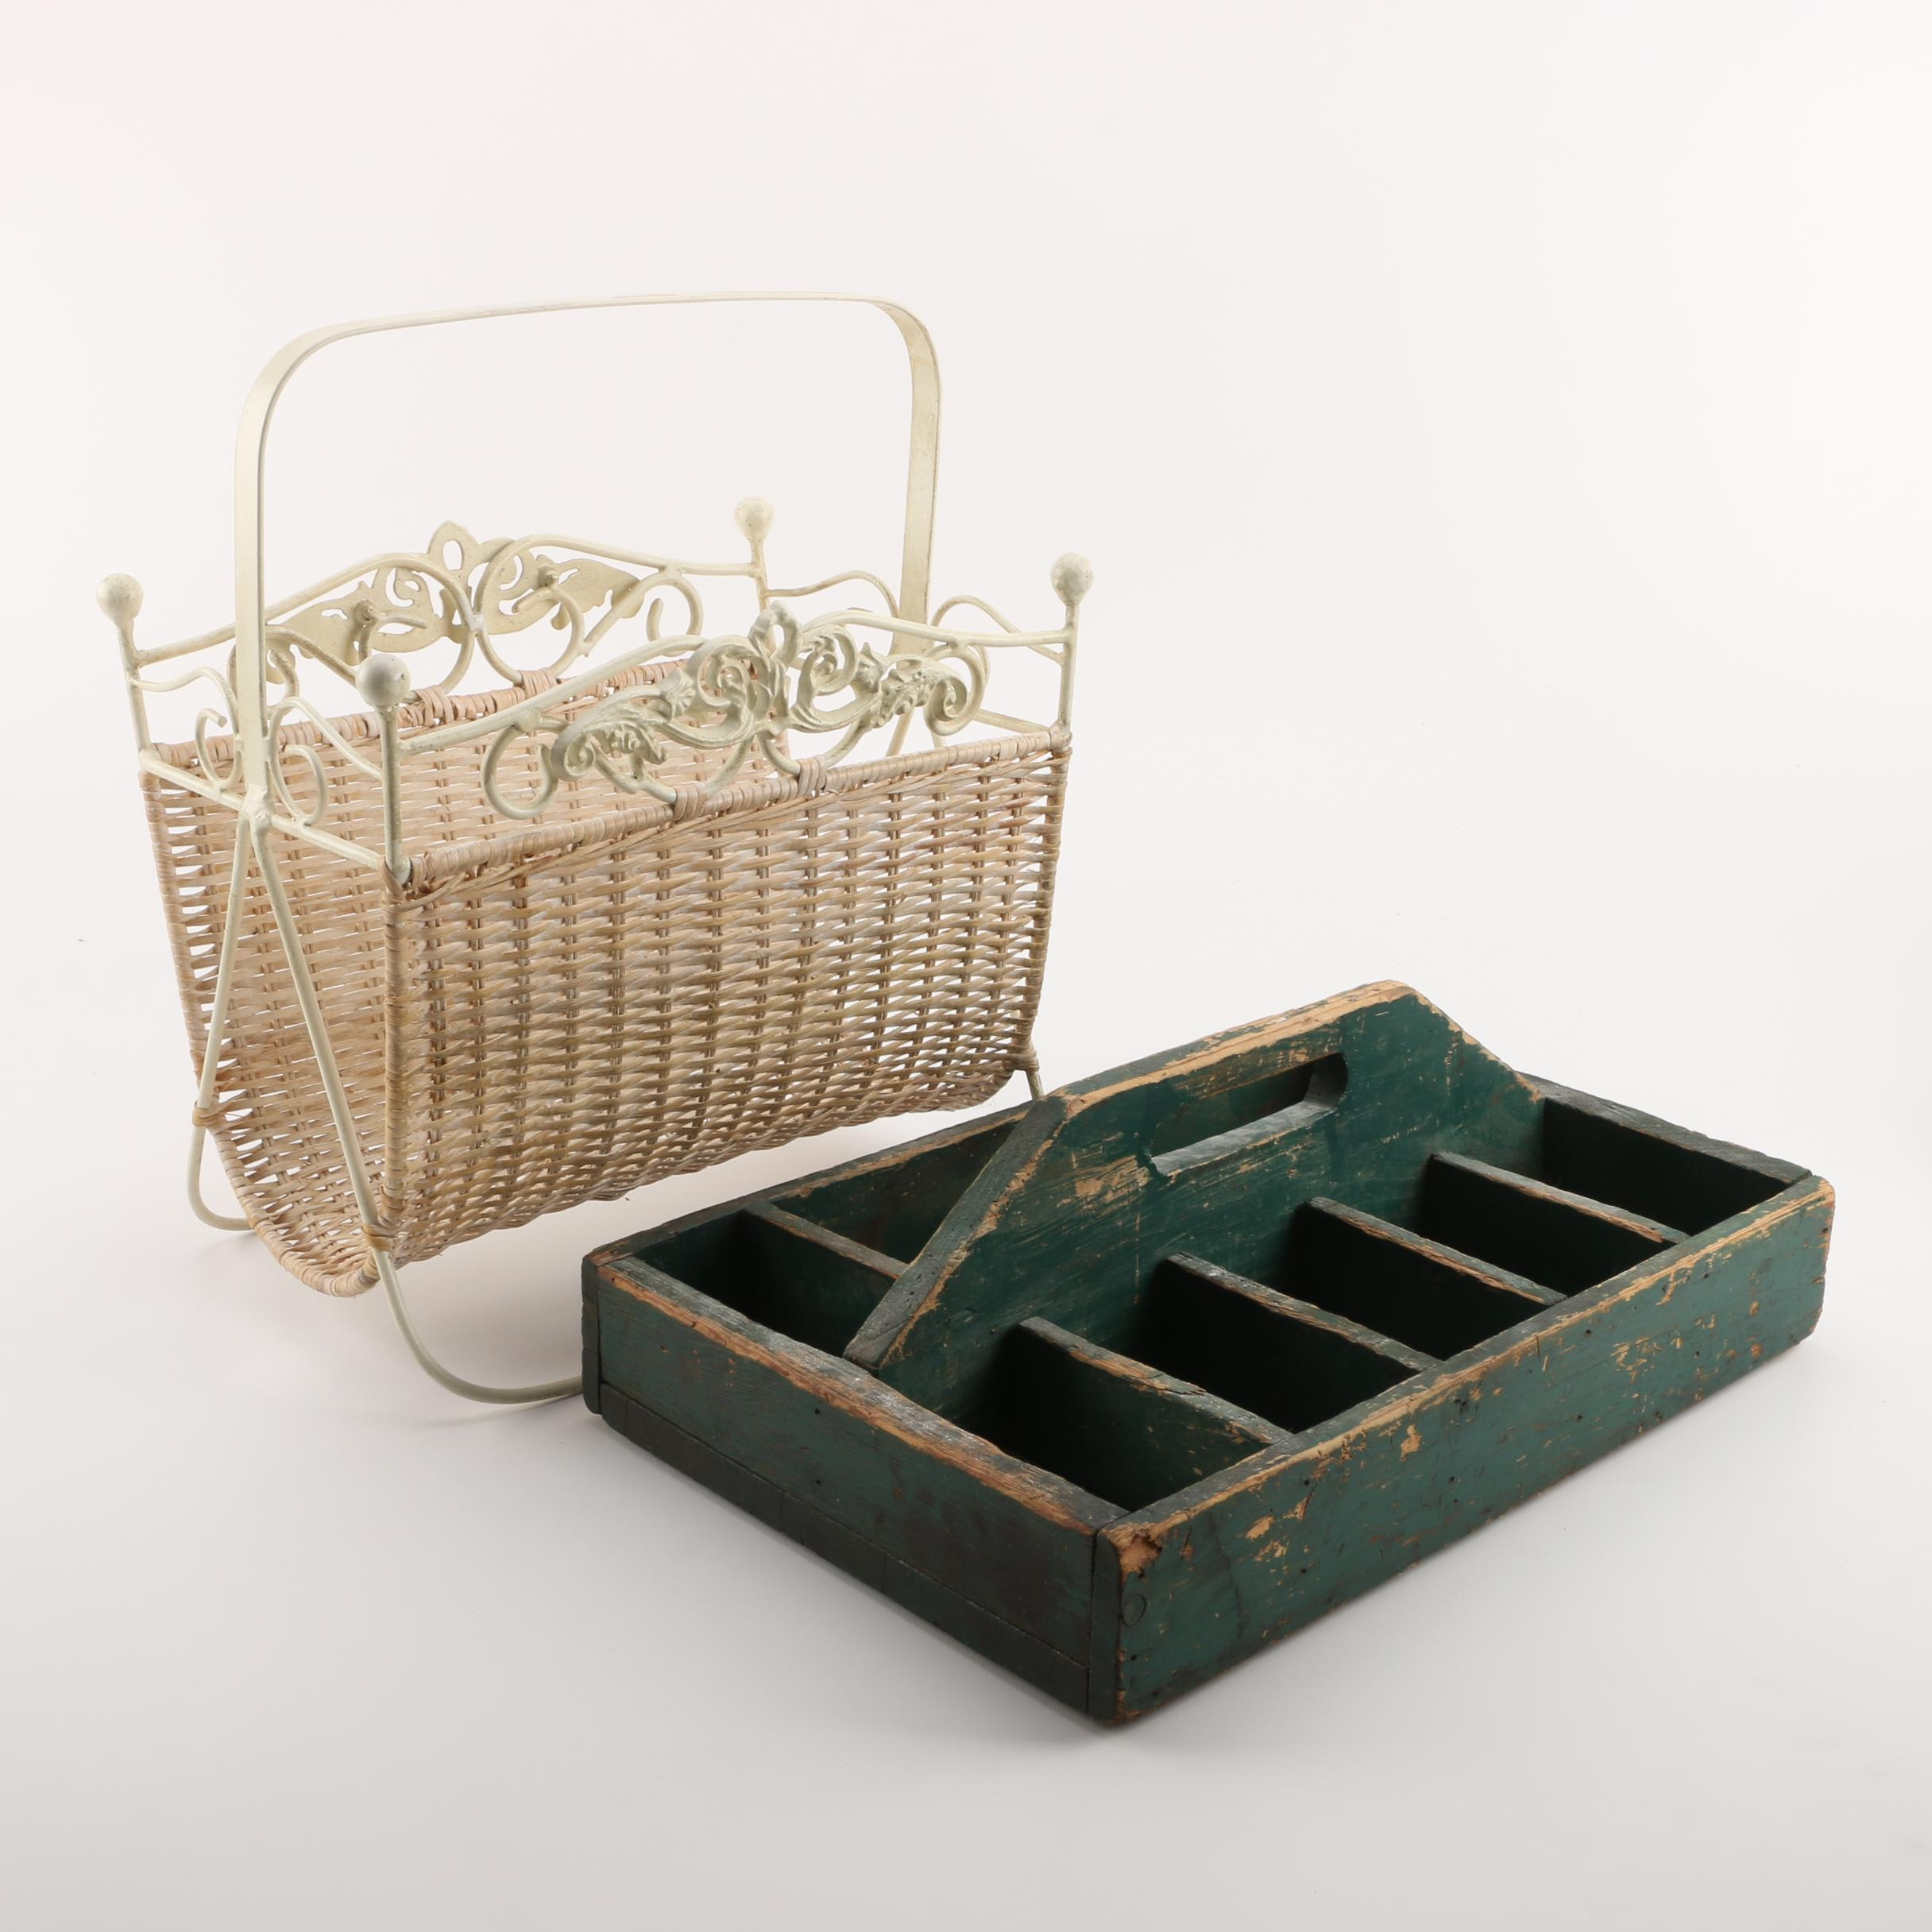 Metal and Woven Magazine Basket and Vintage Wooden Divided Tray